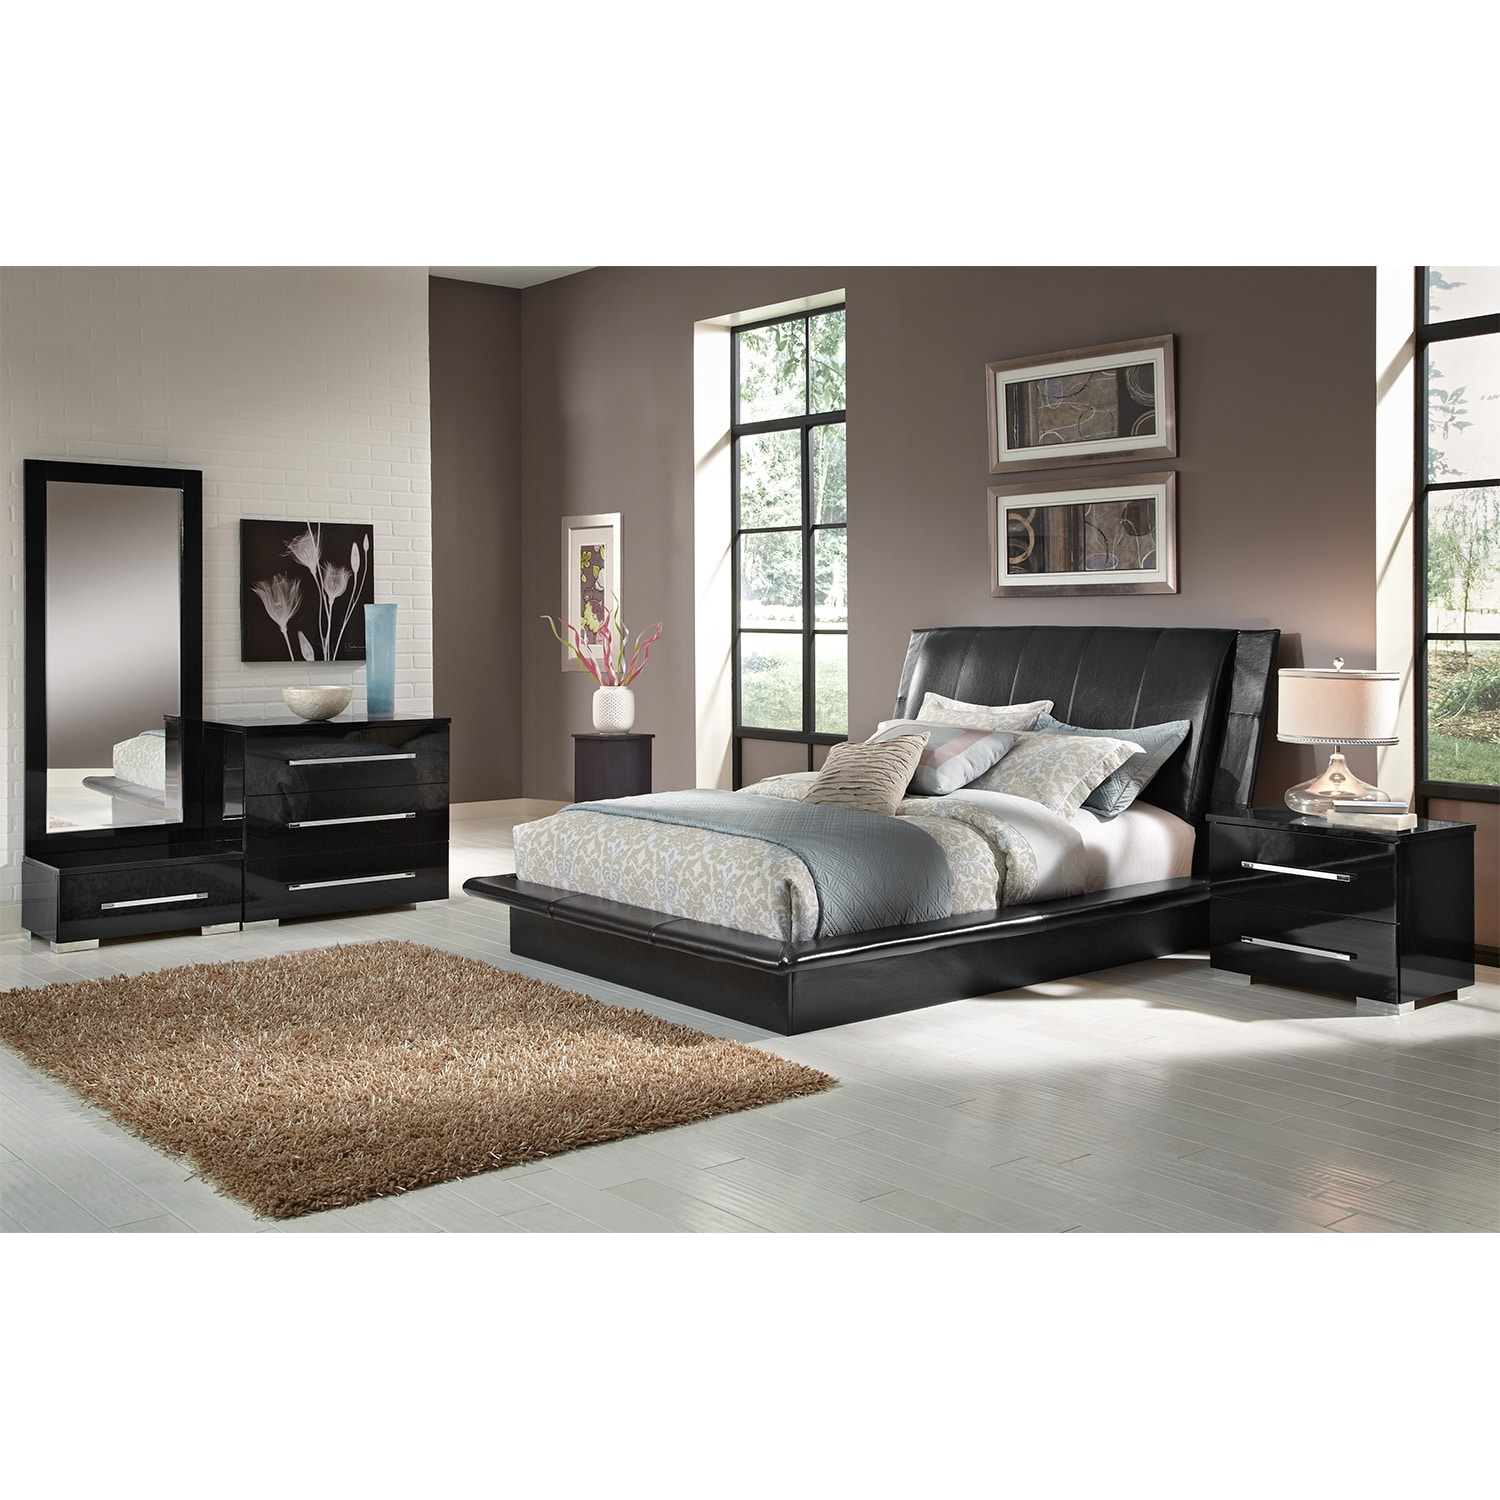 Dimora queen upholstered bed black american signature for Beautiful bedroom furniture